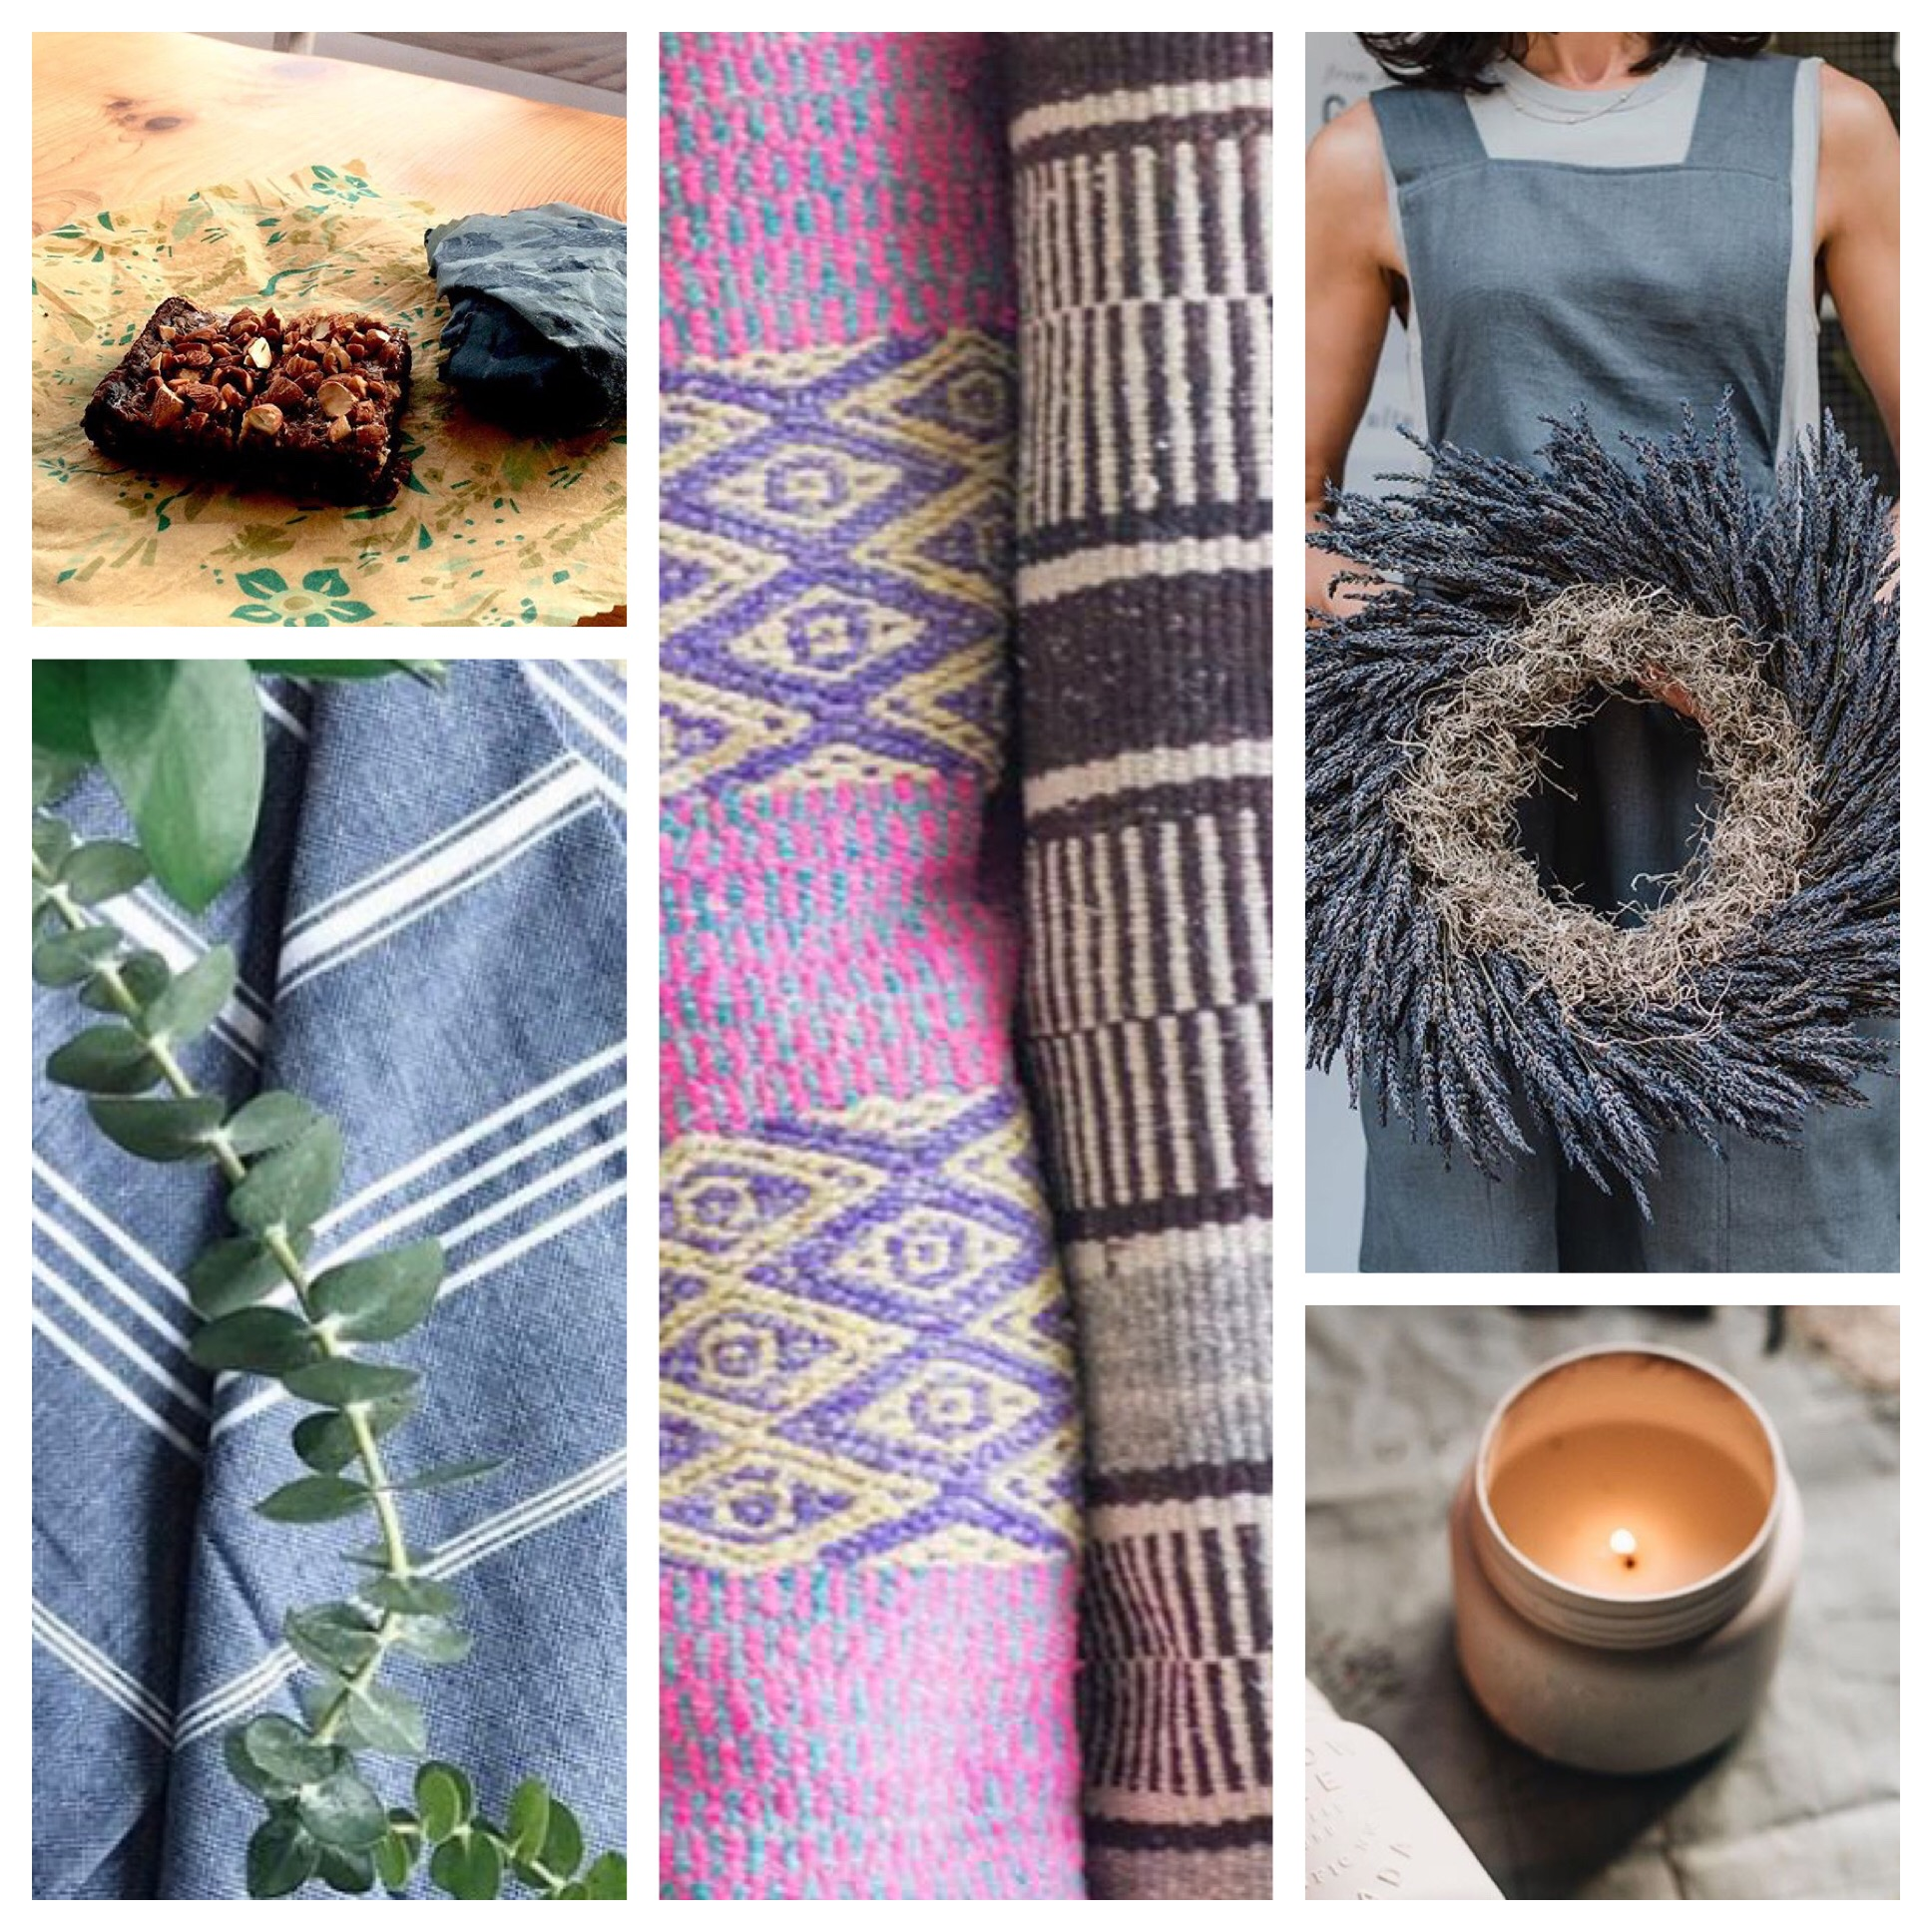 CLOCKWISE L TO R: WESTERLY CREATIONS, SOME OF A KIND, FROM THE GARDEN SHED, HOLLOW TREE, SUNDAY DRY GOODS